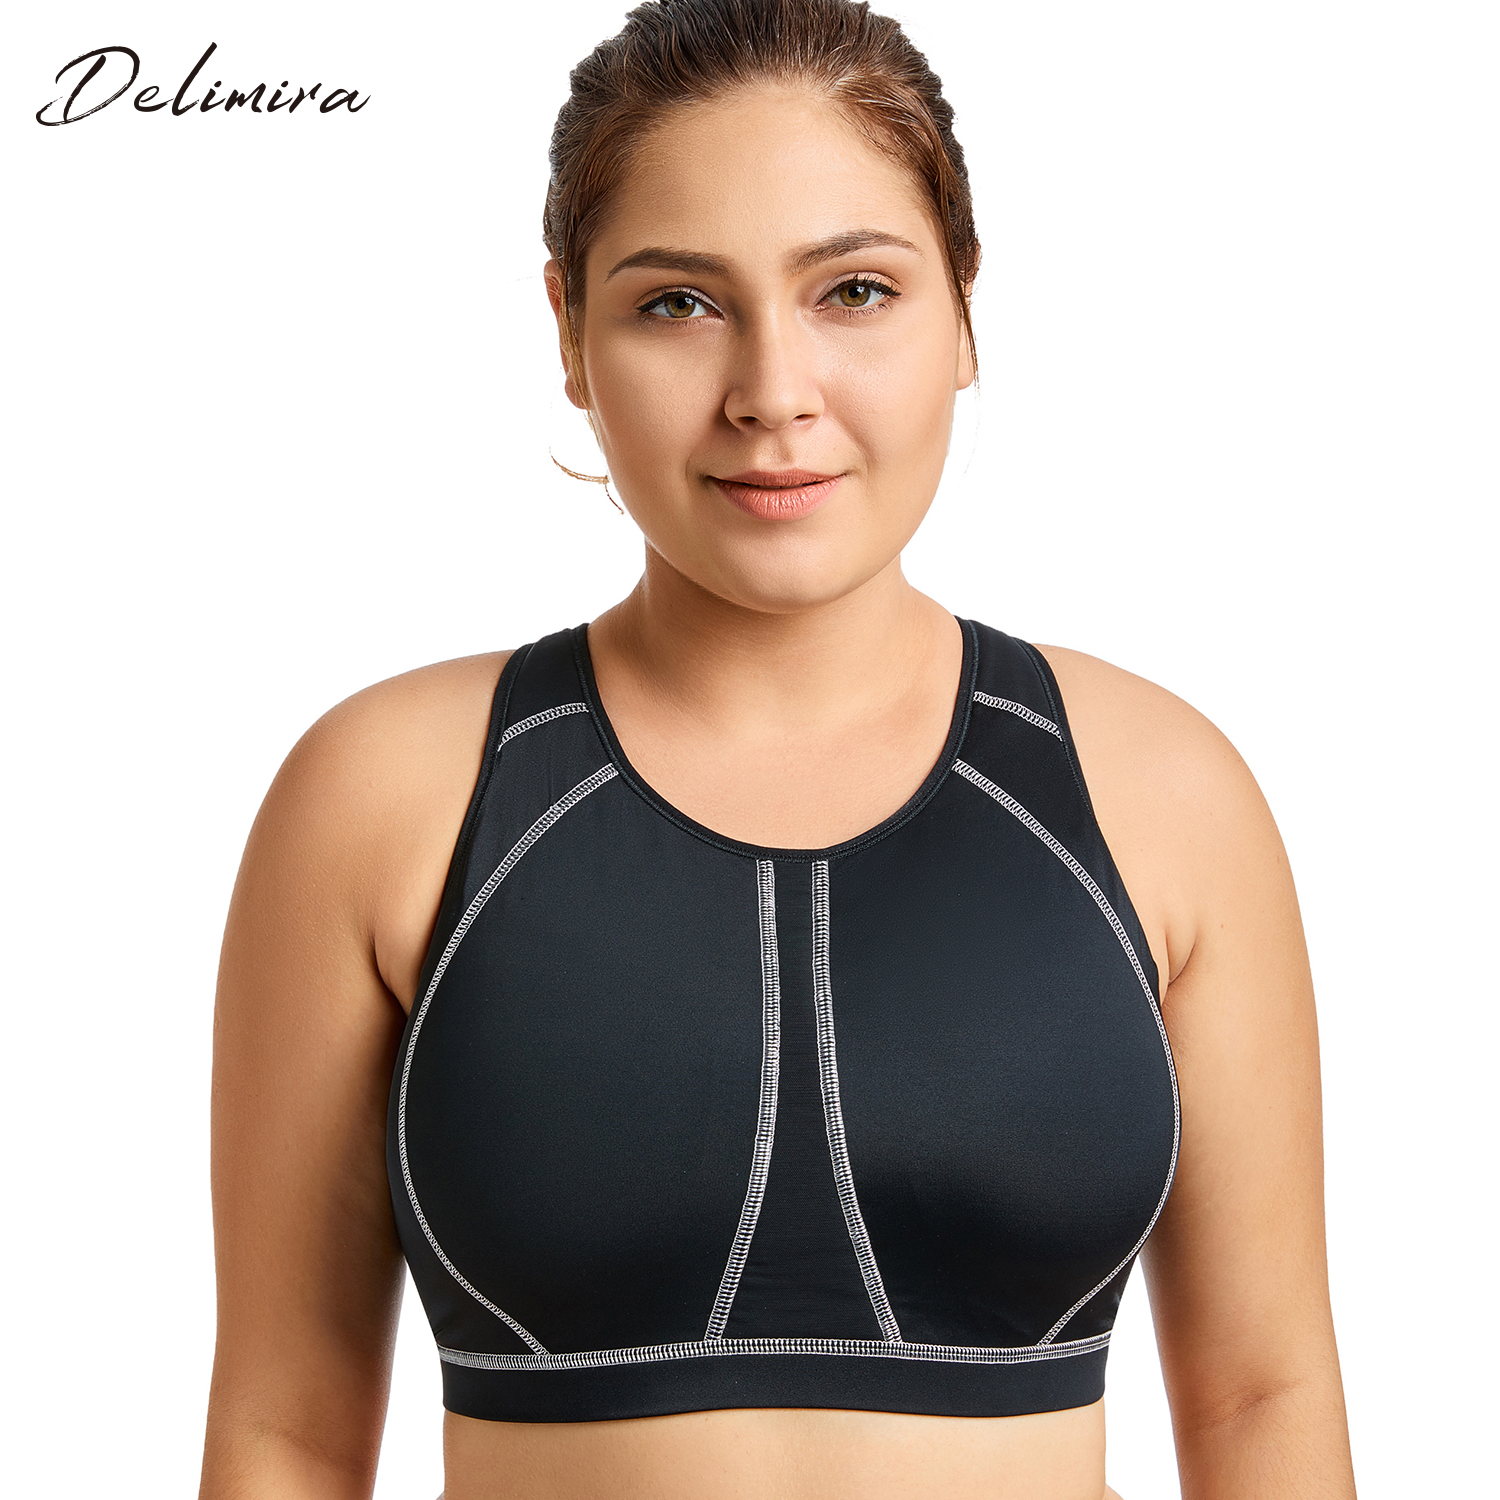 6e31f7d40 Women s High Impact Full Support Wire Free Molded Cup Active Plus Size  Exercise Bra